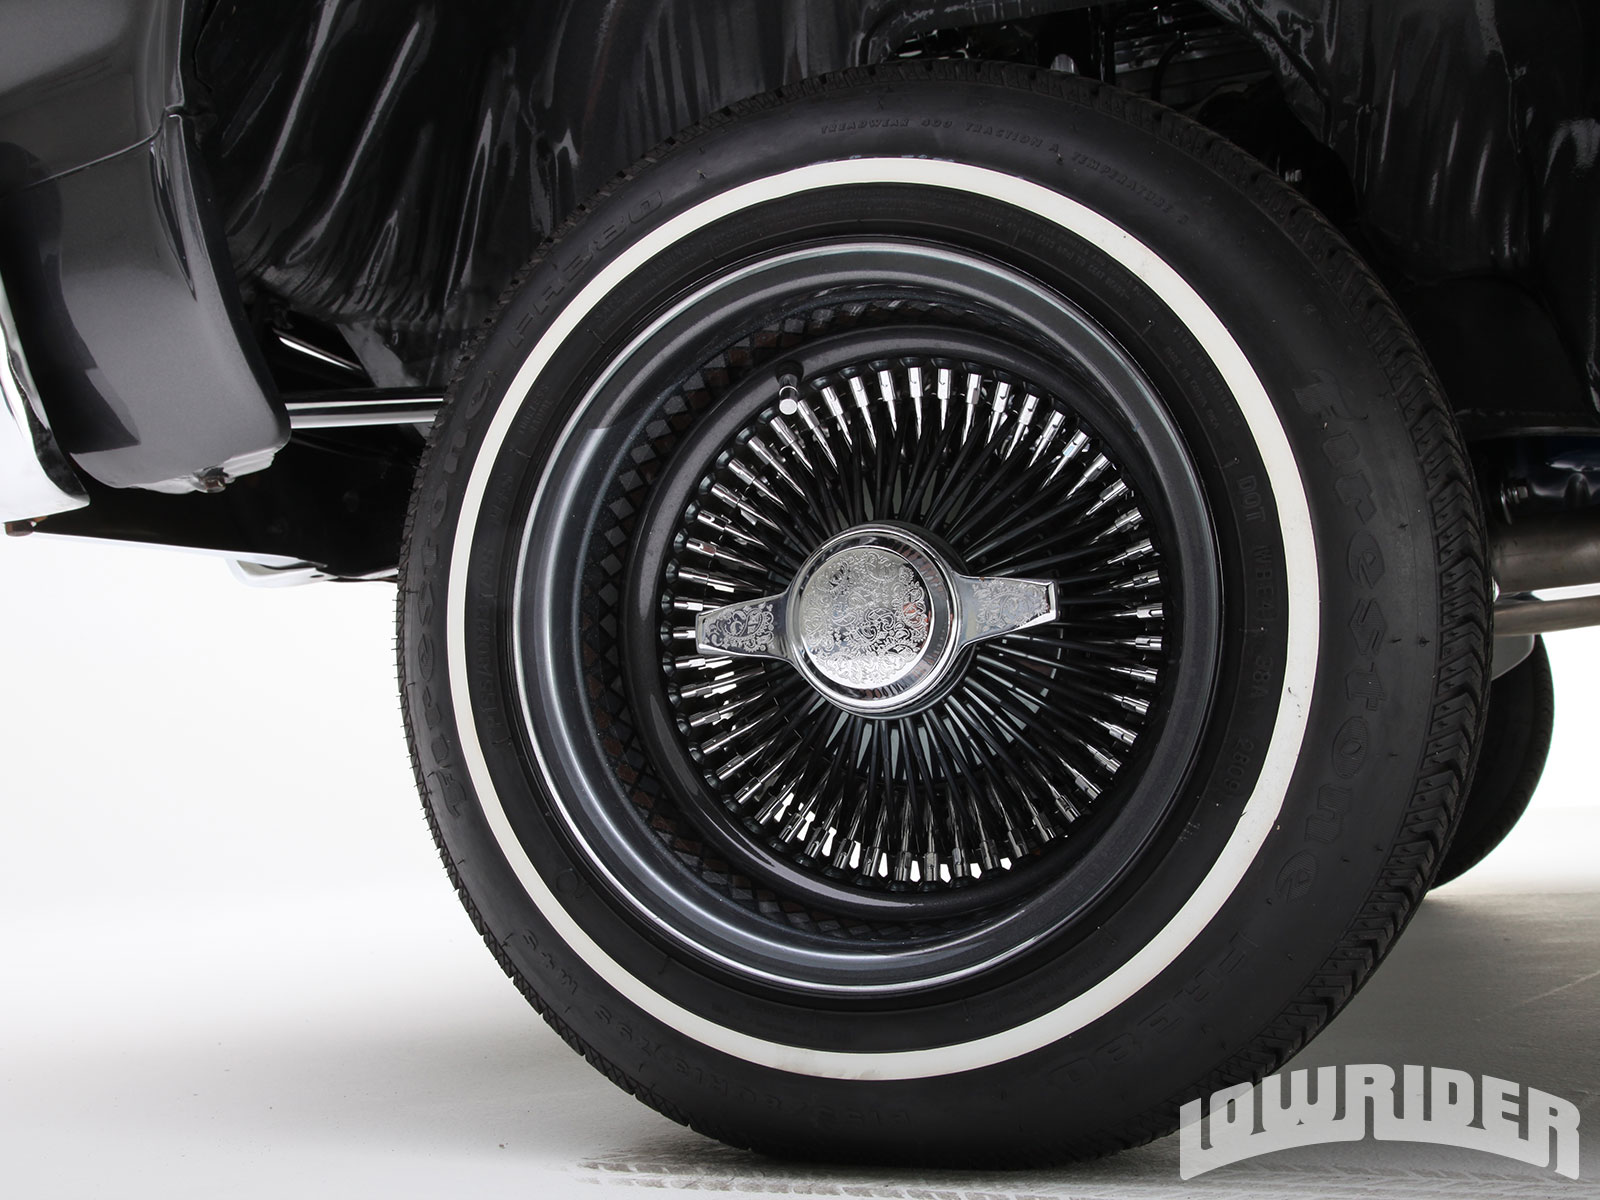 Lowrider Rims And Tires >> 1964 Chevrolet Impala - Lowrider Magazine